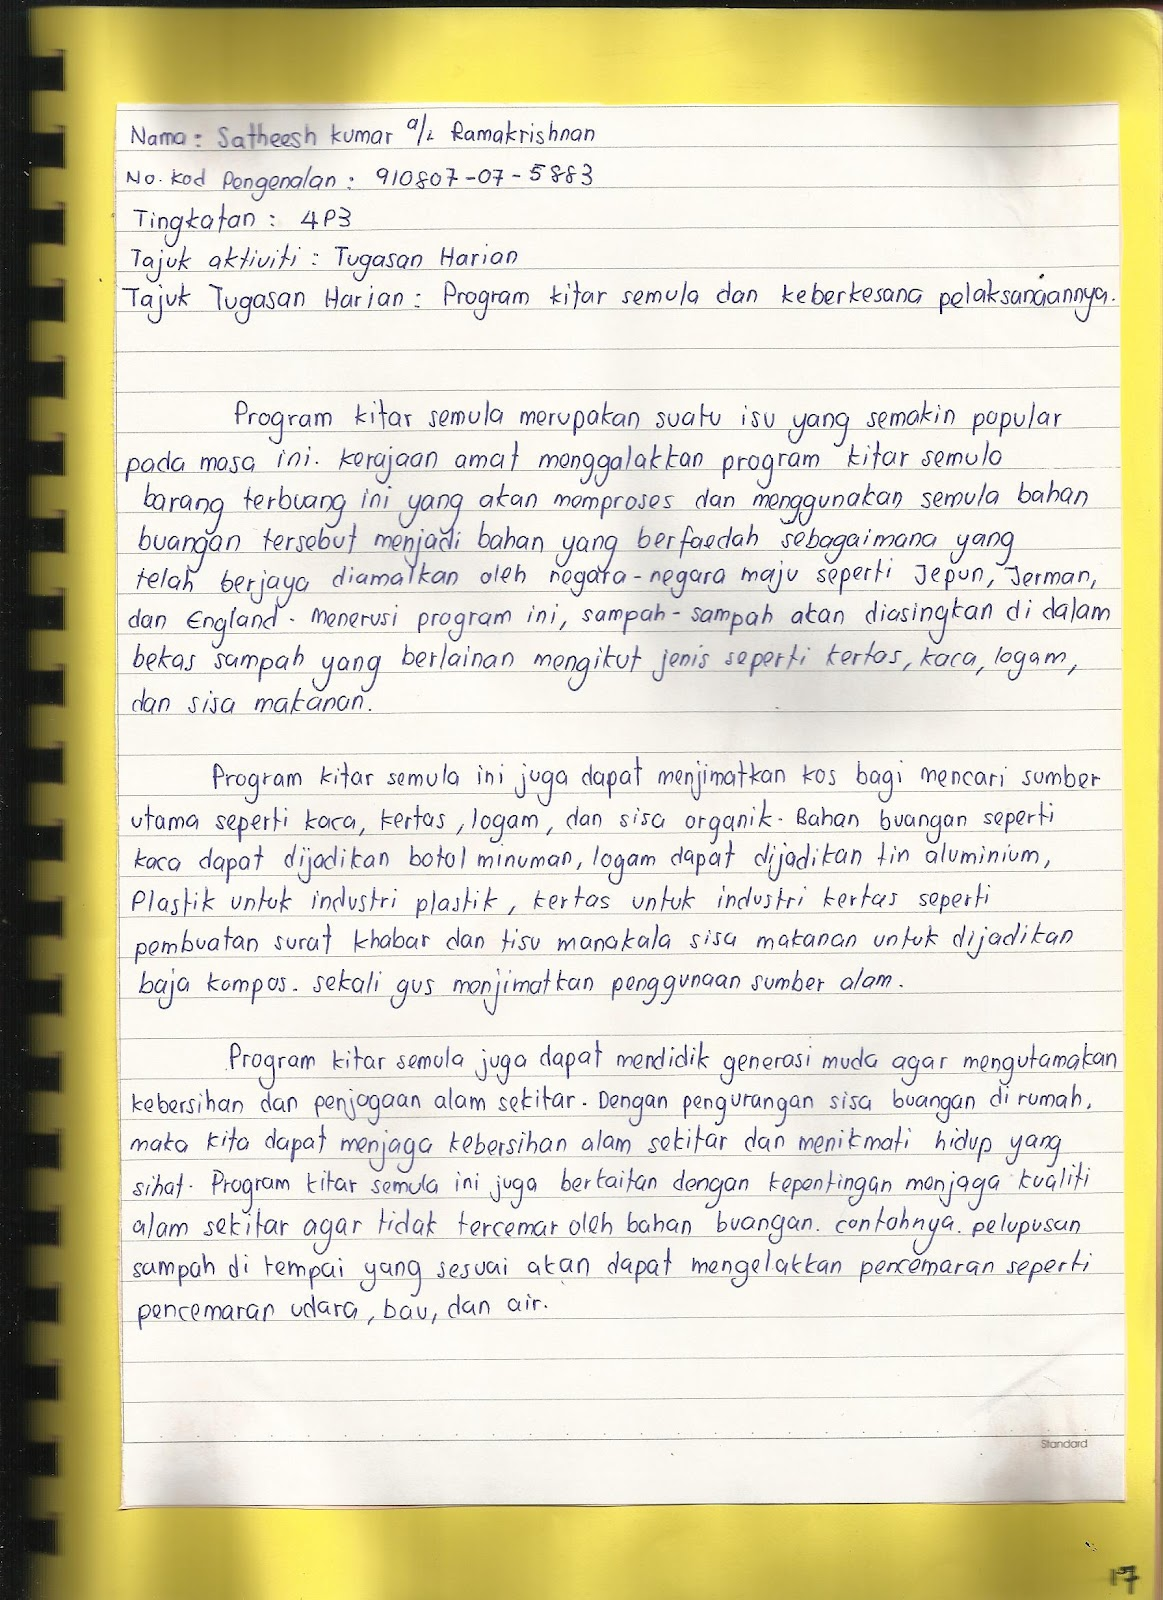 essay on moral spm moral folio essay related posts to spm moral folio essay spm moral folio essay related posts to spm moral folio essay